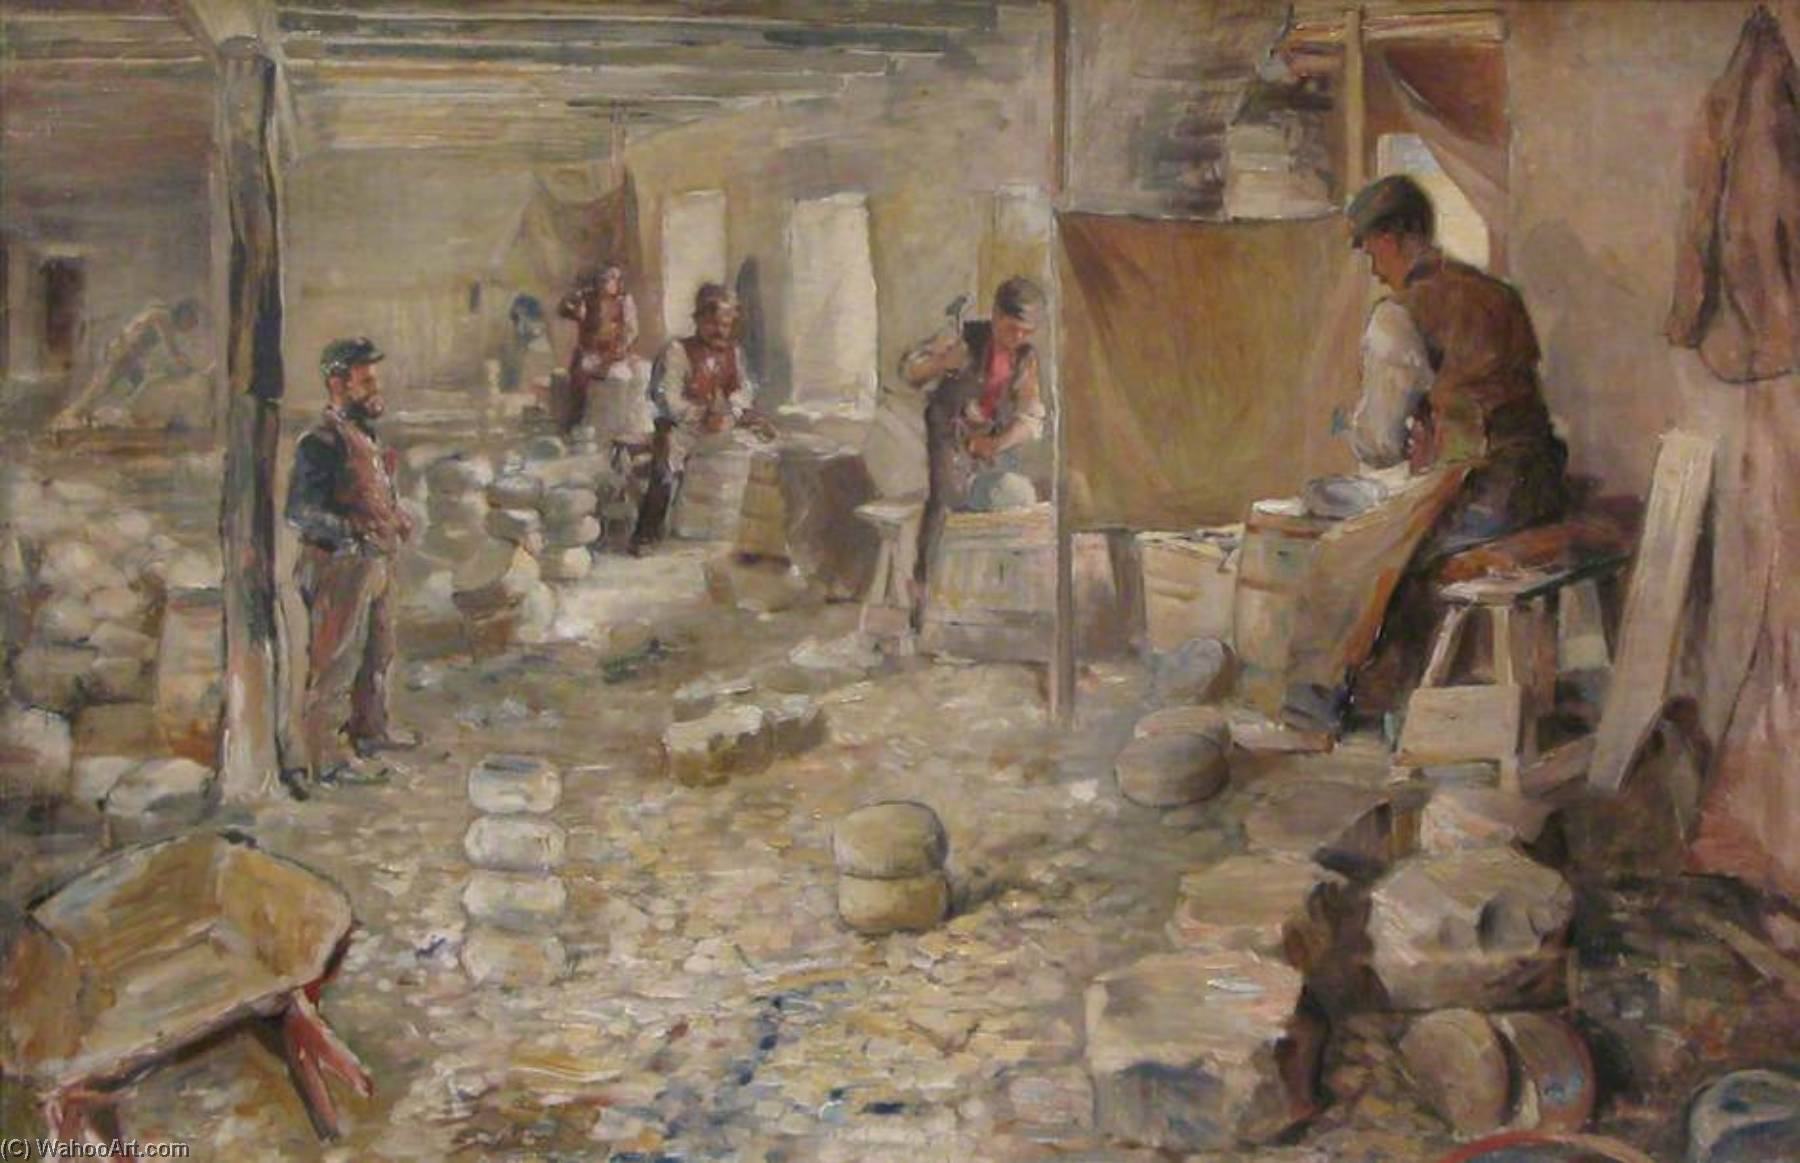 Curling Stone Workshop, Oil On Canvas by John Elliot Maguire